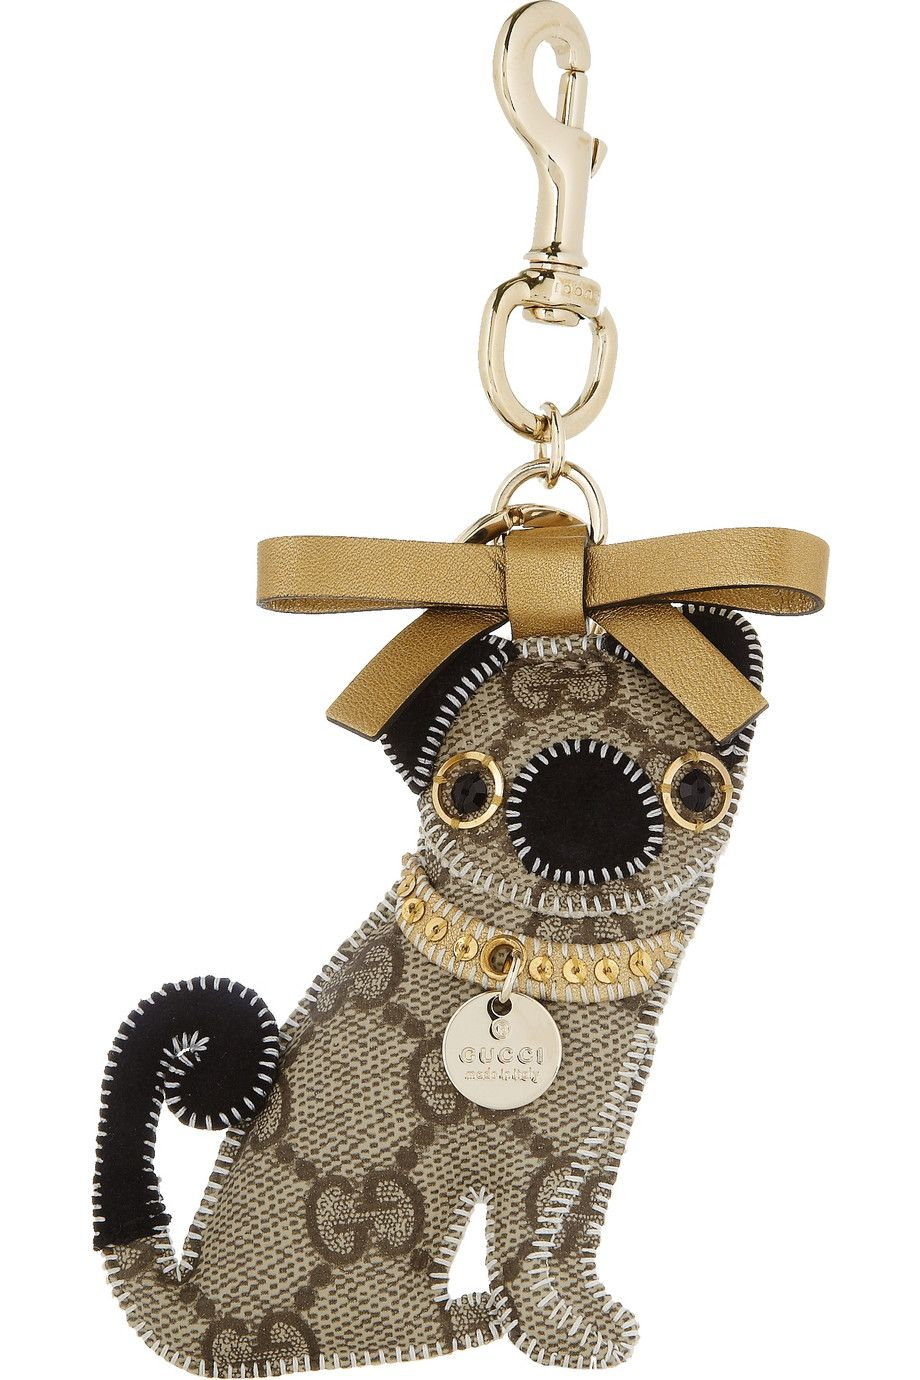 249cf67a61dd $185 Gucci pug key chain.... glad they're sold out so I don't have to  explain to myself why that's ridic to spend that much!